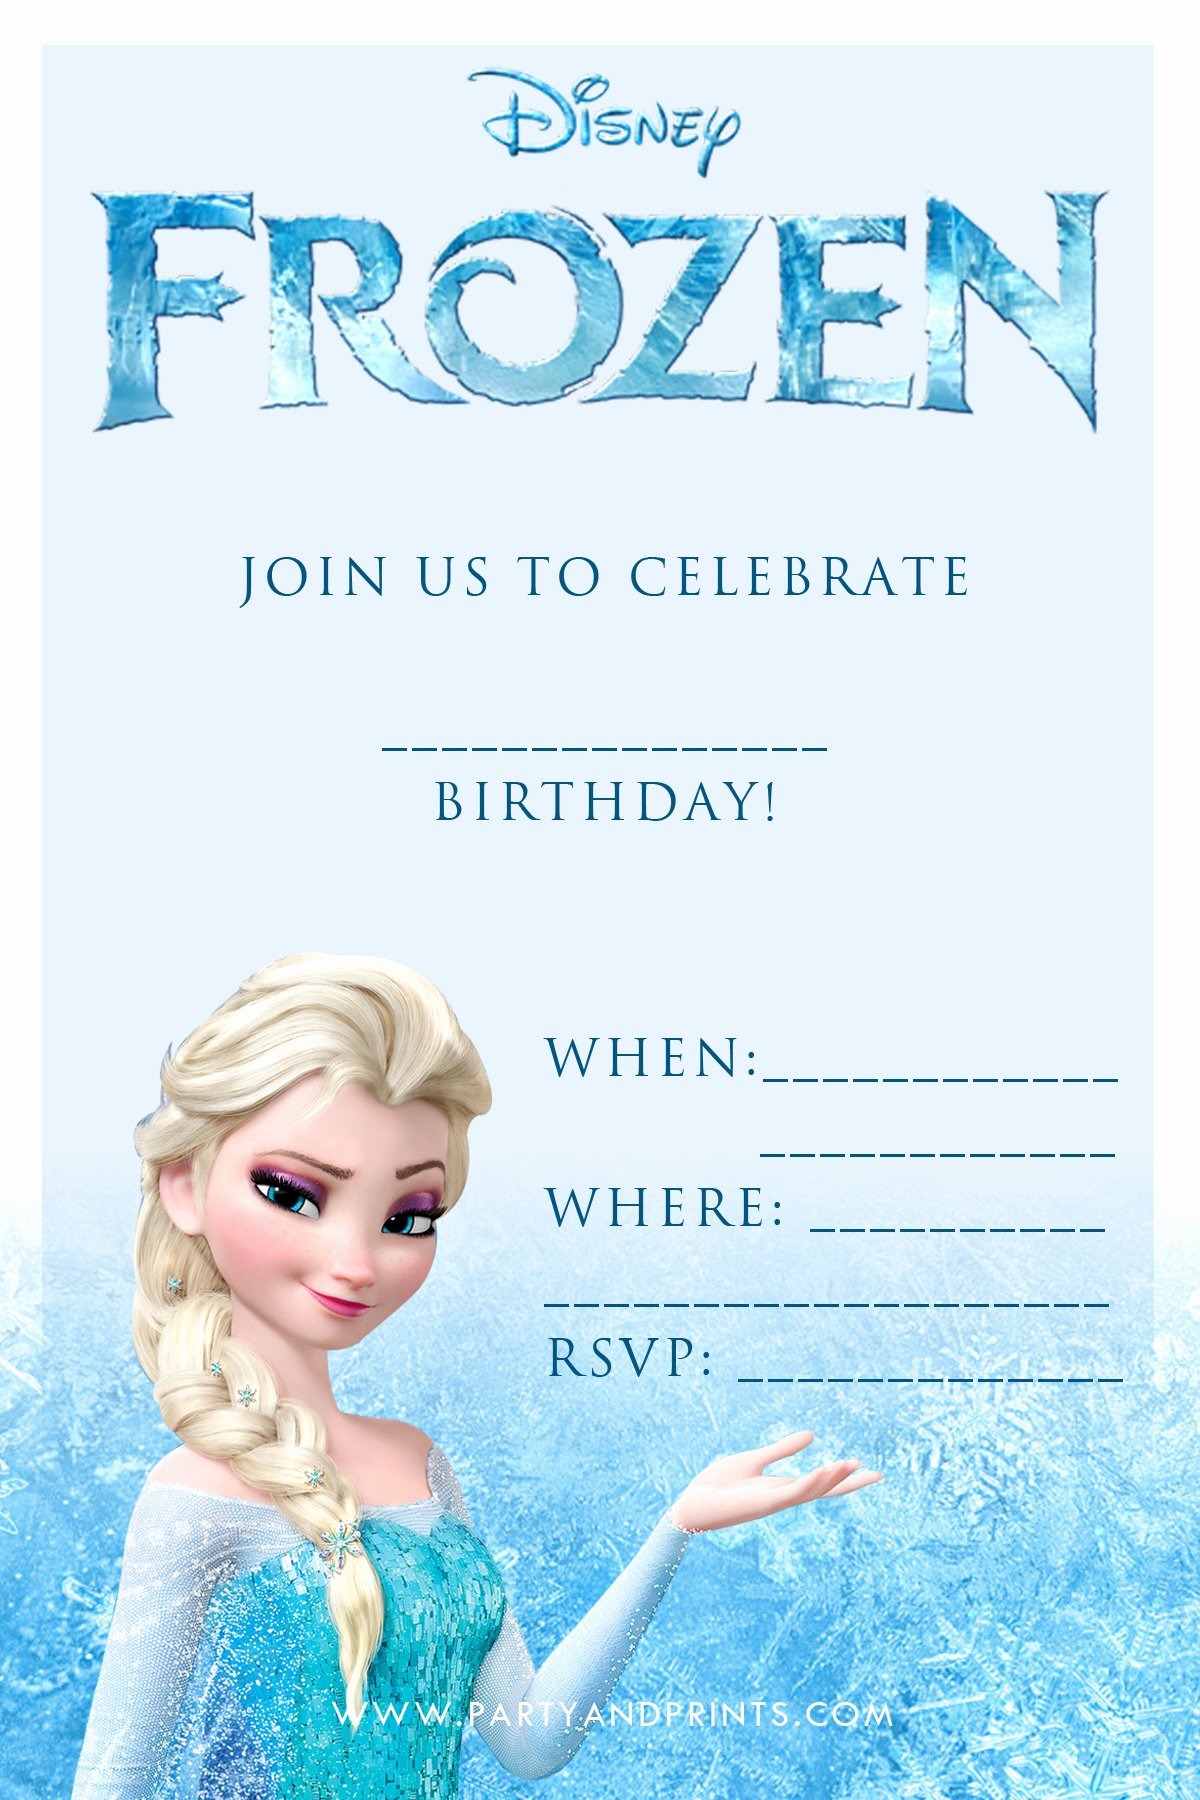 Frozen Birthday Party Invitations Best Of 20 Frozen Birthday Party Ideas